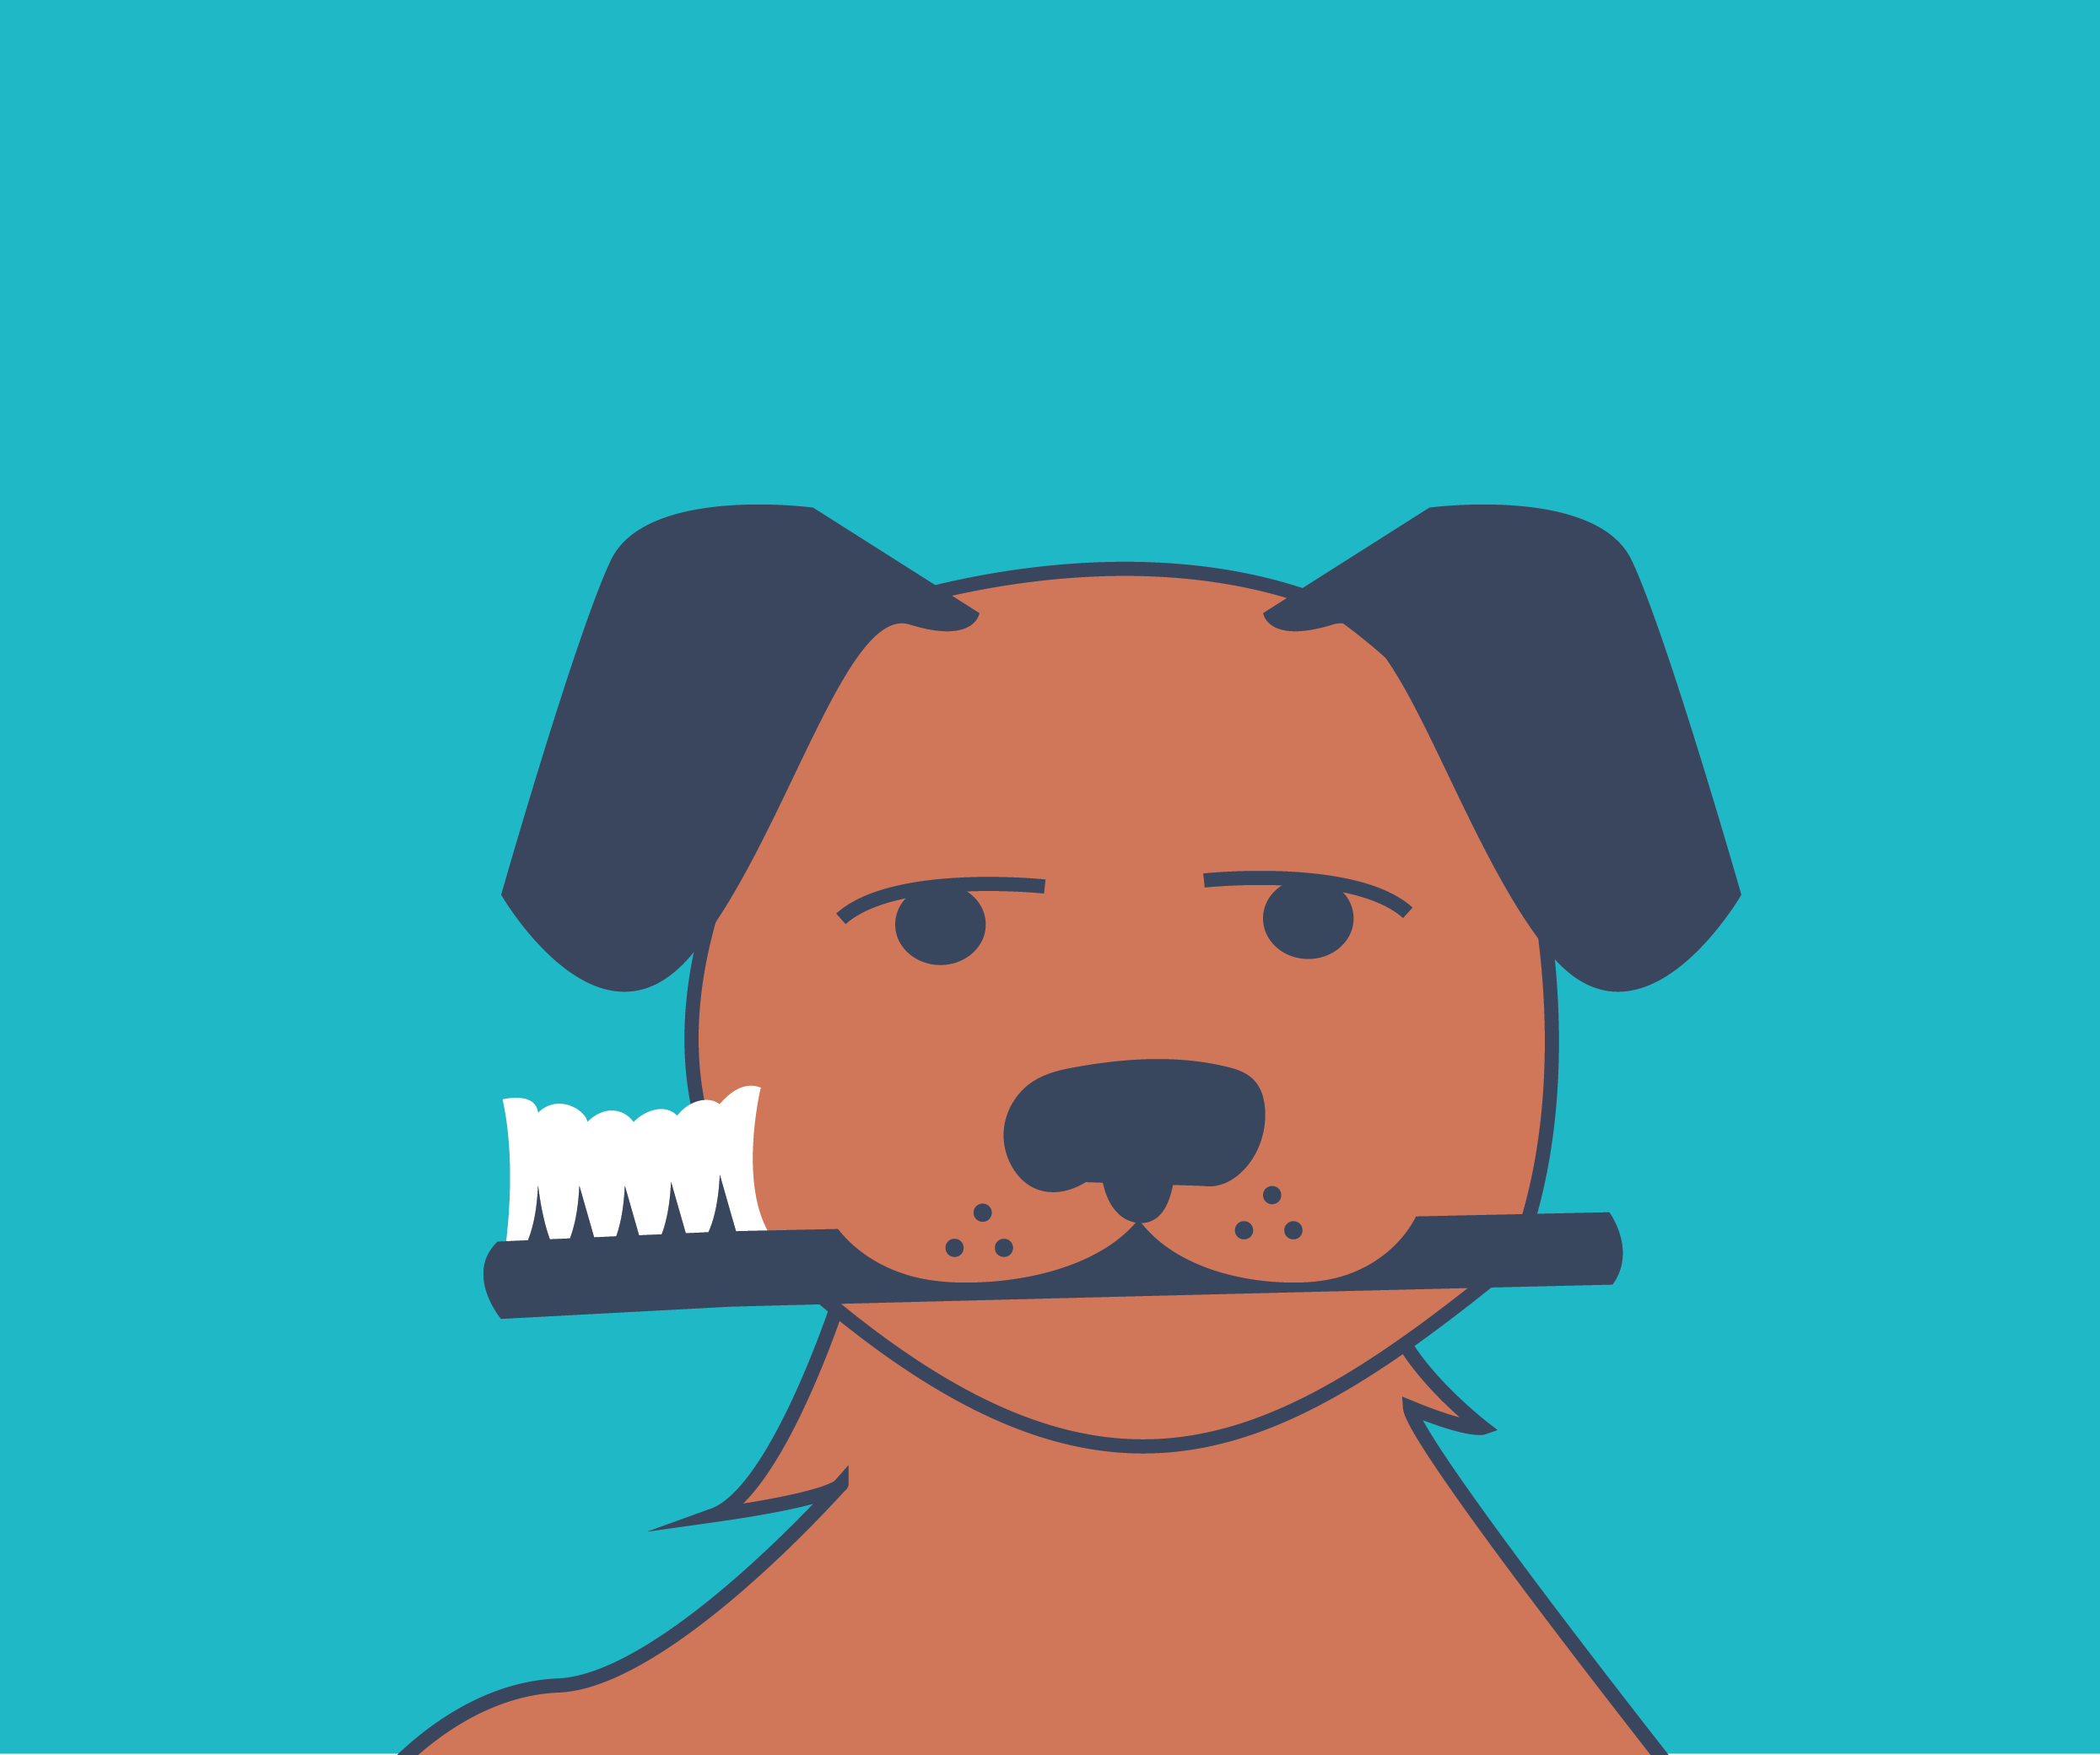 Graphic of dog holding a toothbrush in its mouth